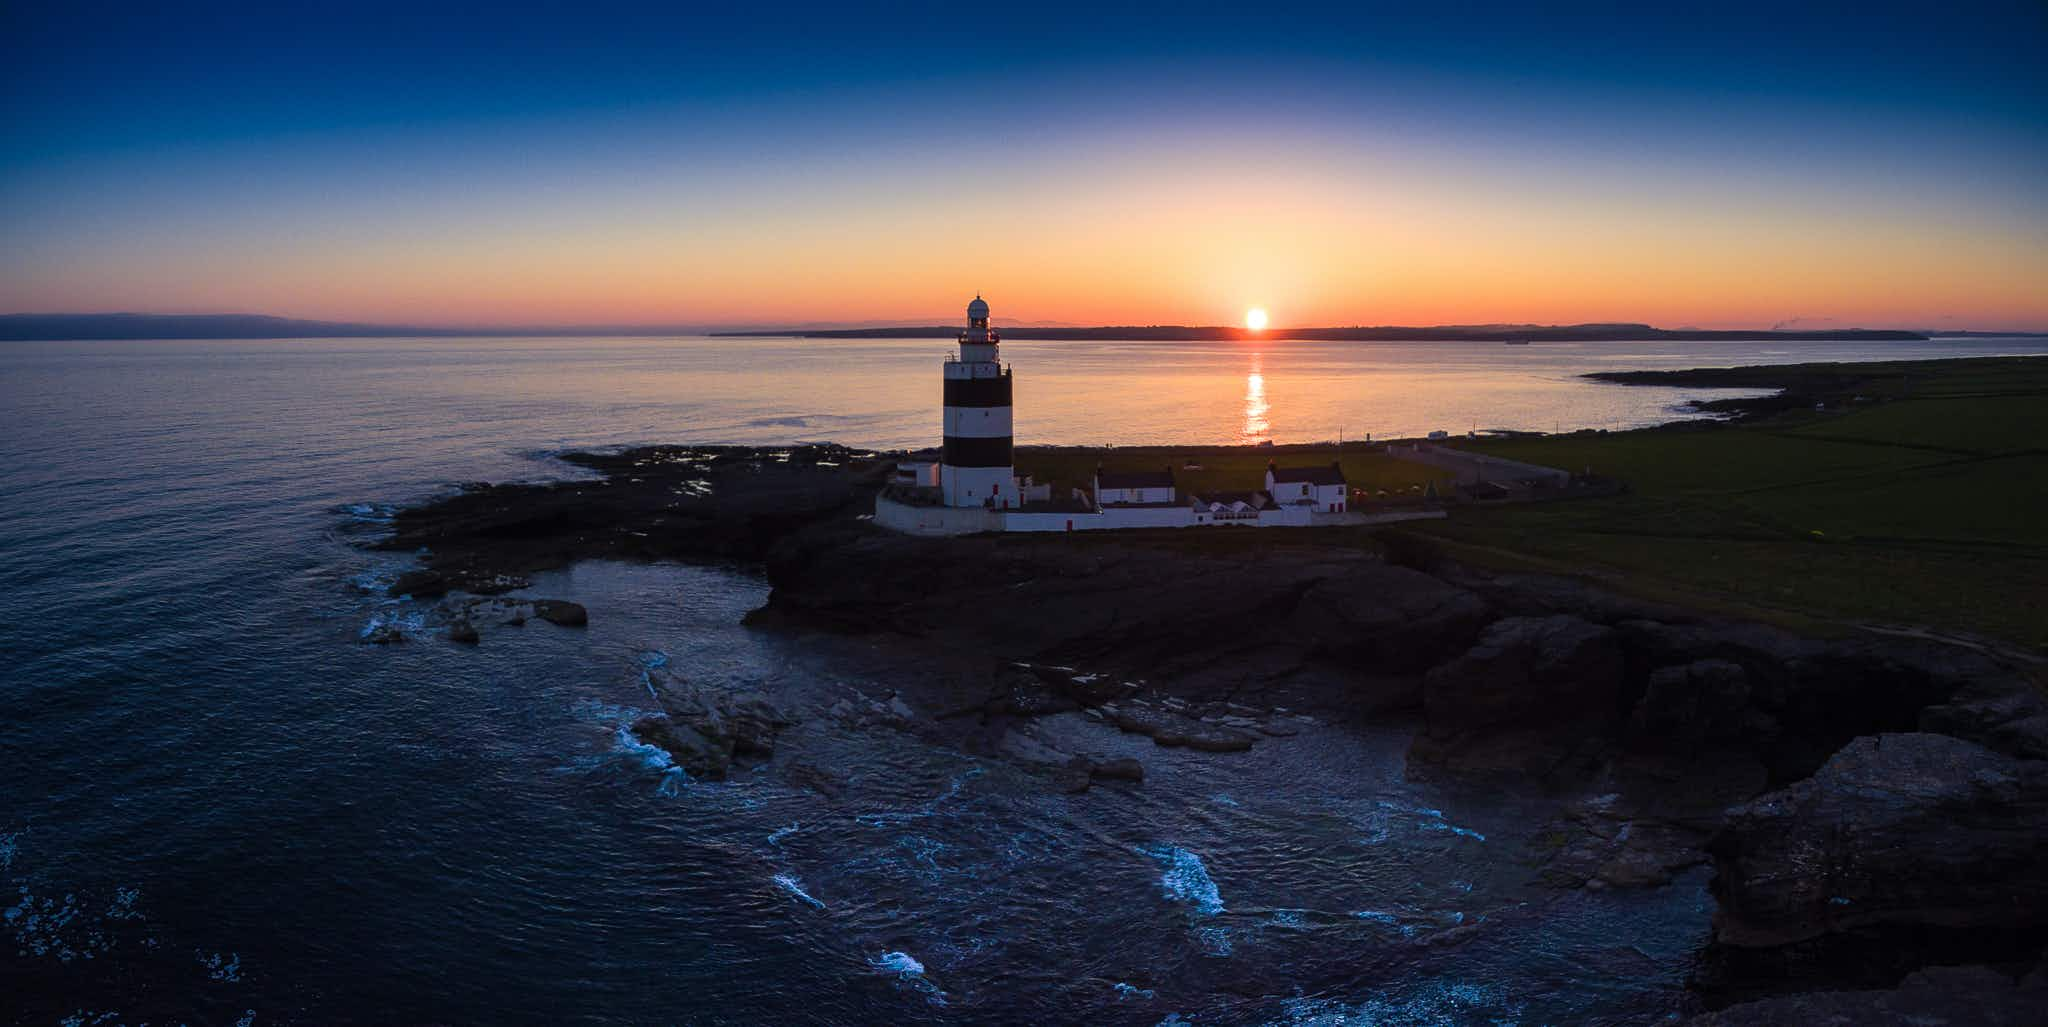 Take a sunset tour at the world's oldest working lighthouse in Ireland